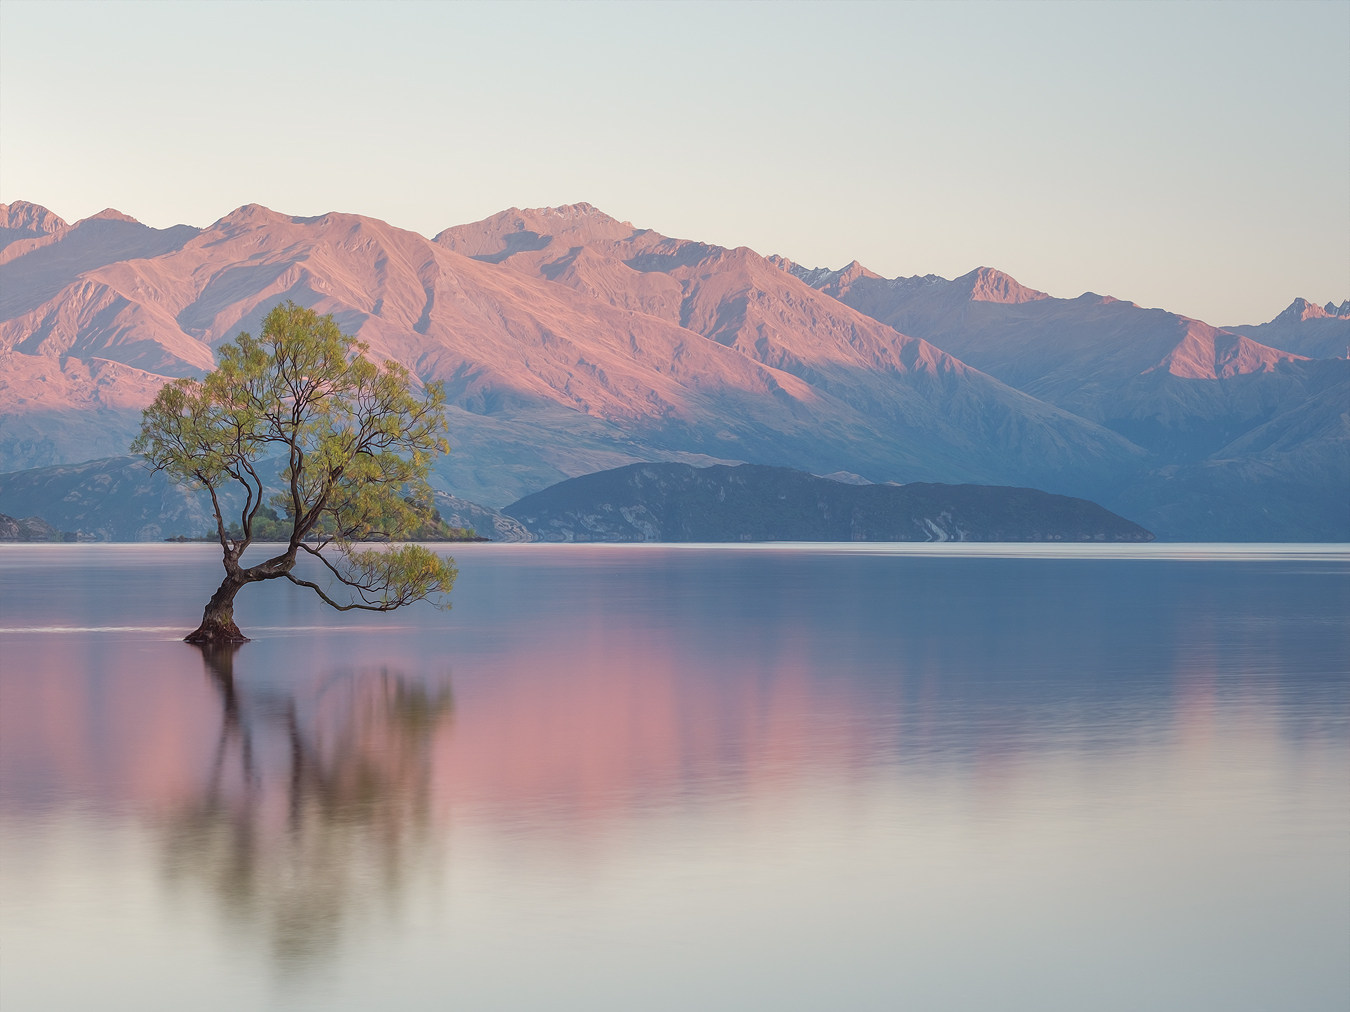 That Wanaka Tree, Wanaka, New Zealand by Nils Leonhardt